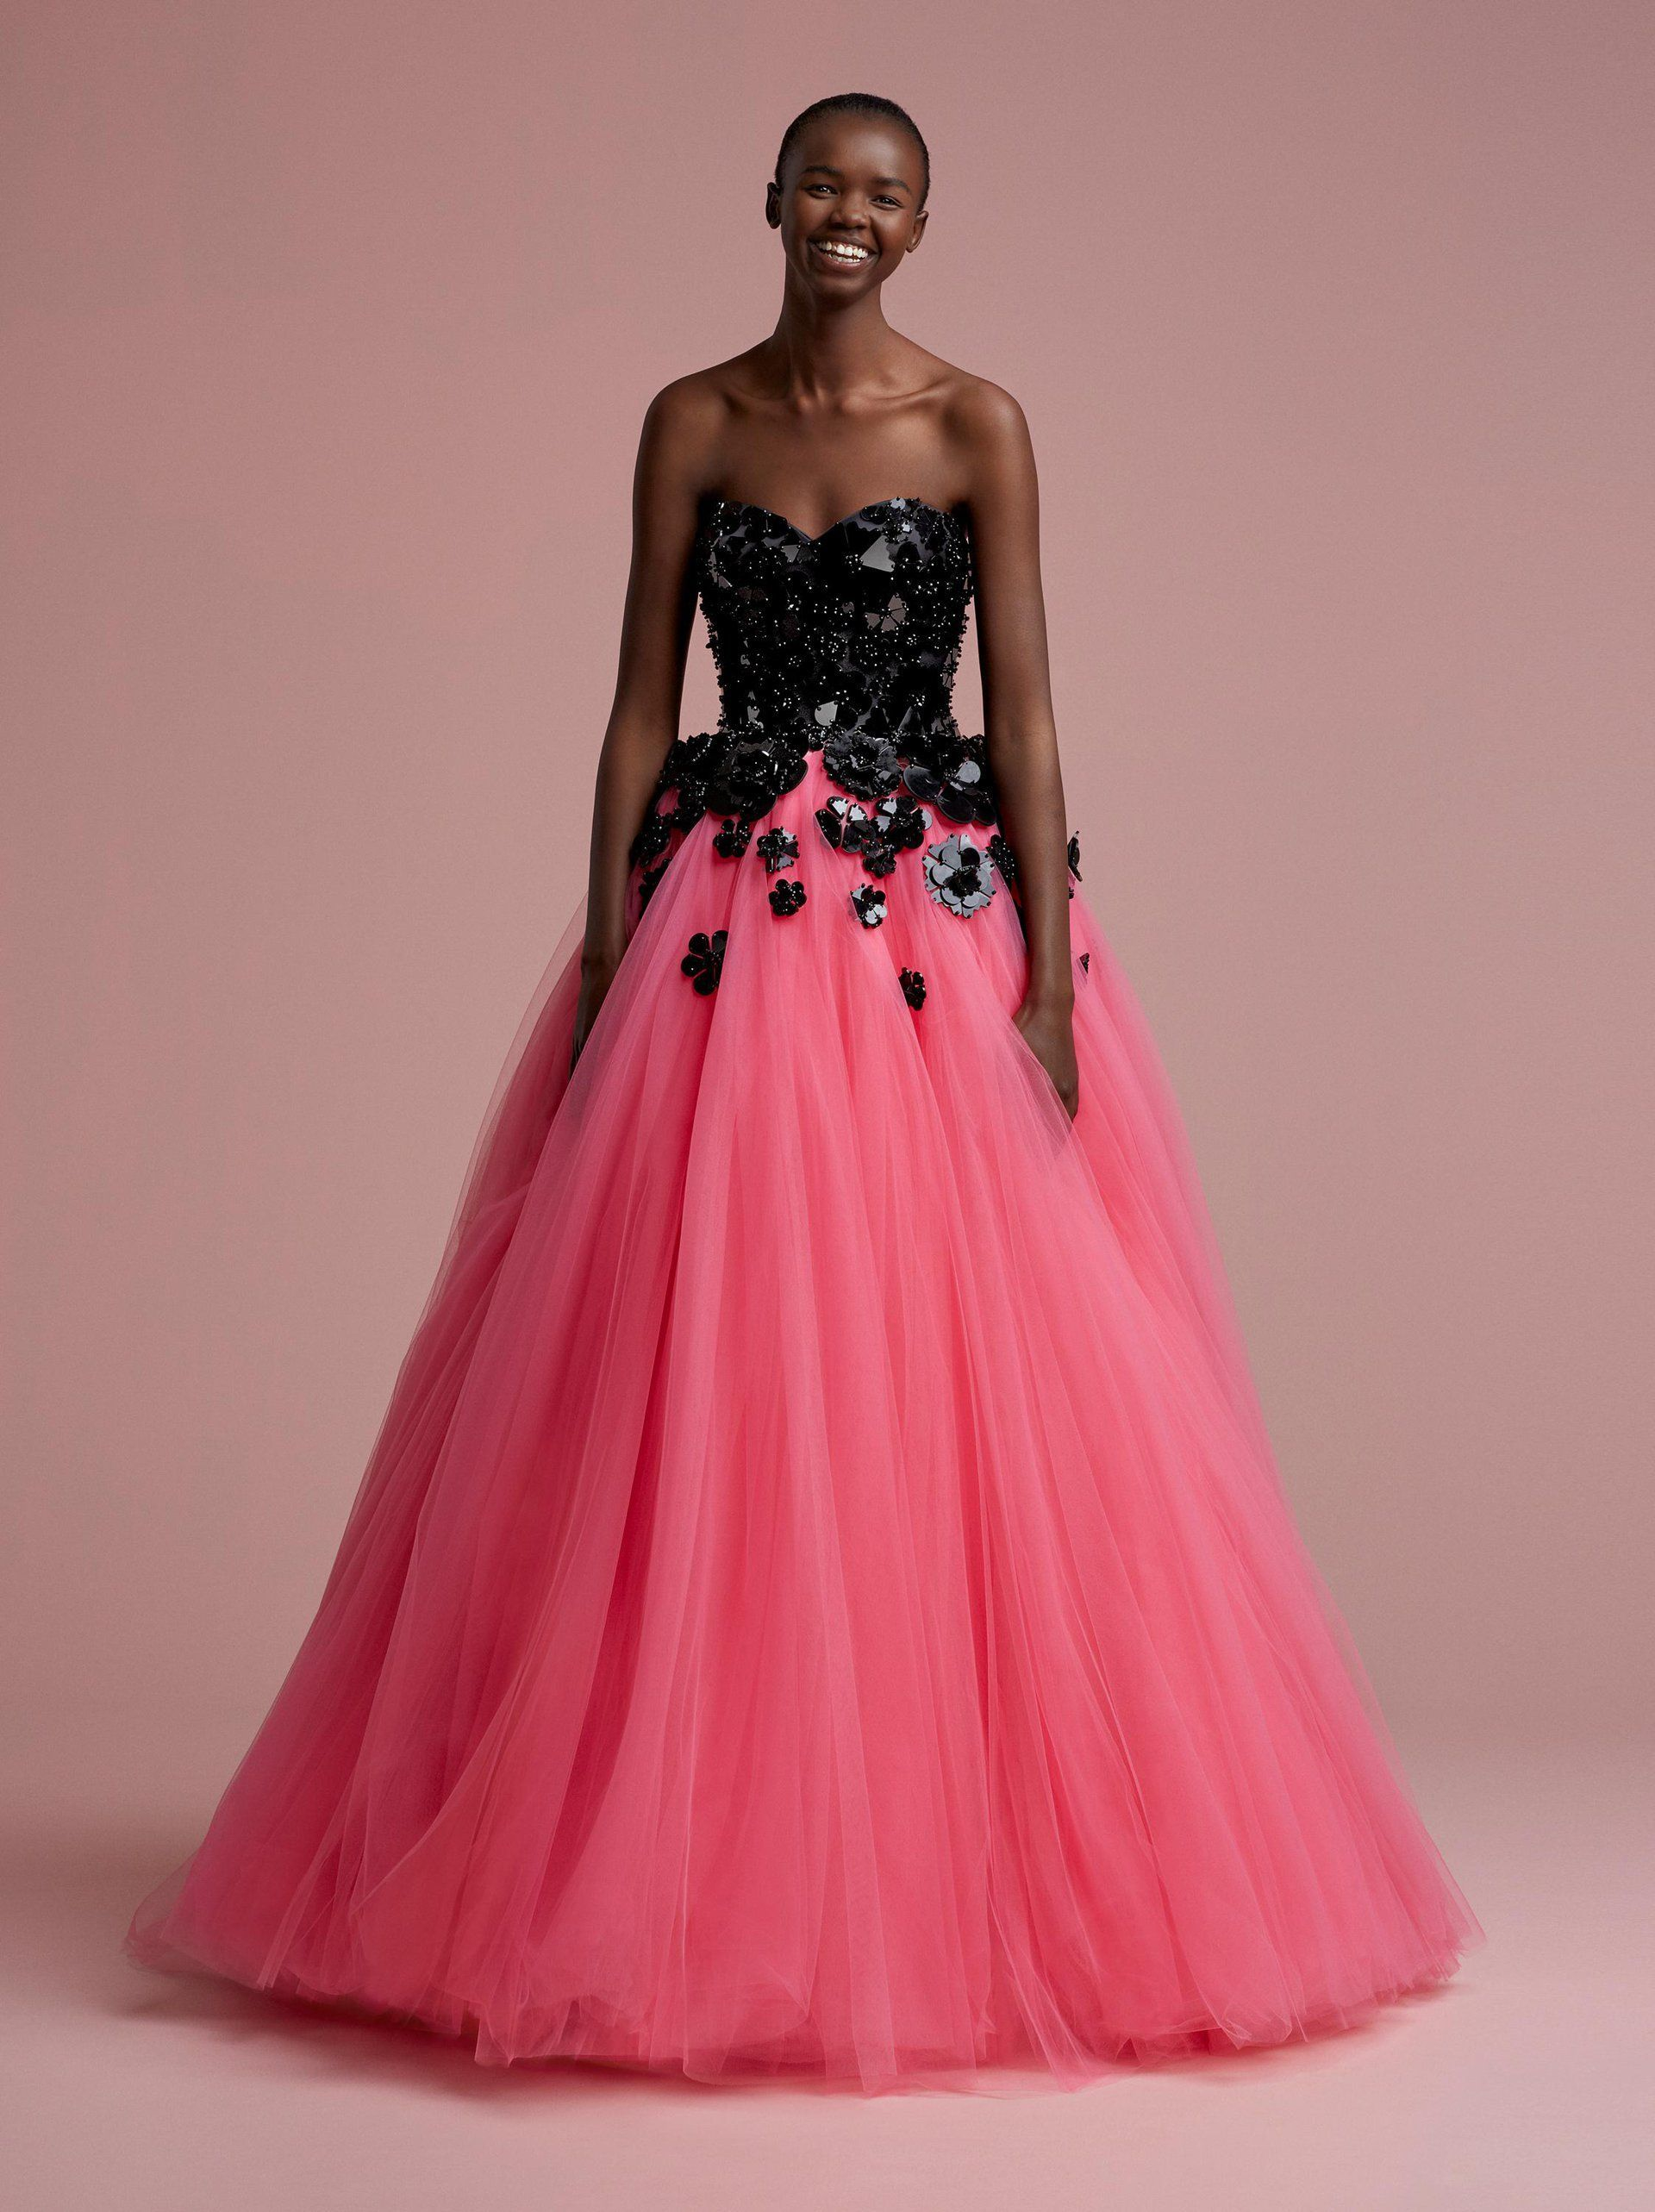 Image result for viktor and rolf tulle scorpio zodiac fashion